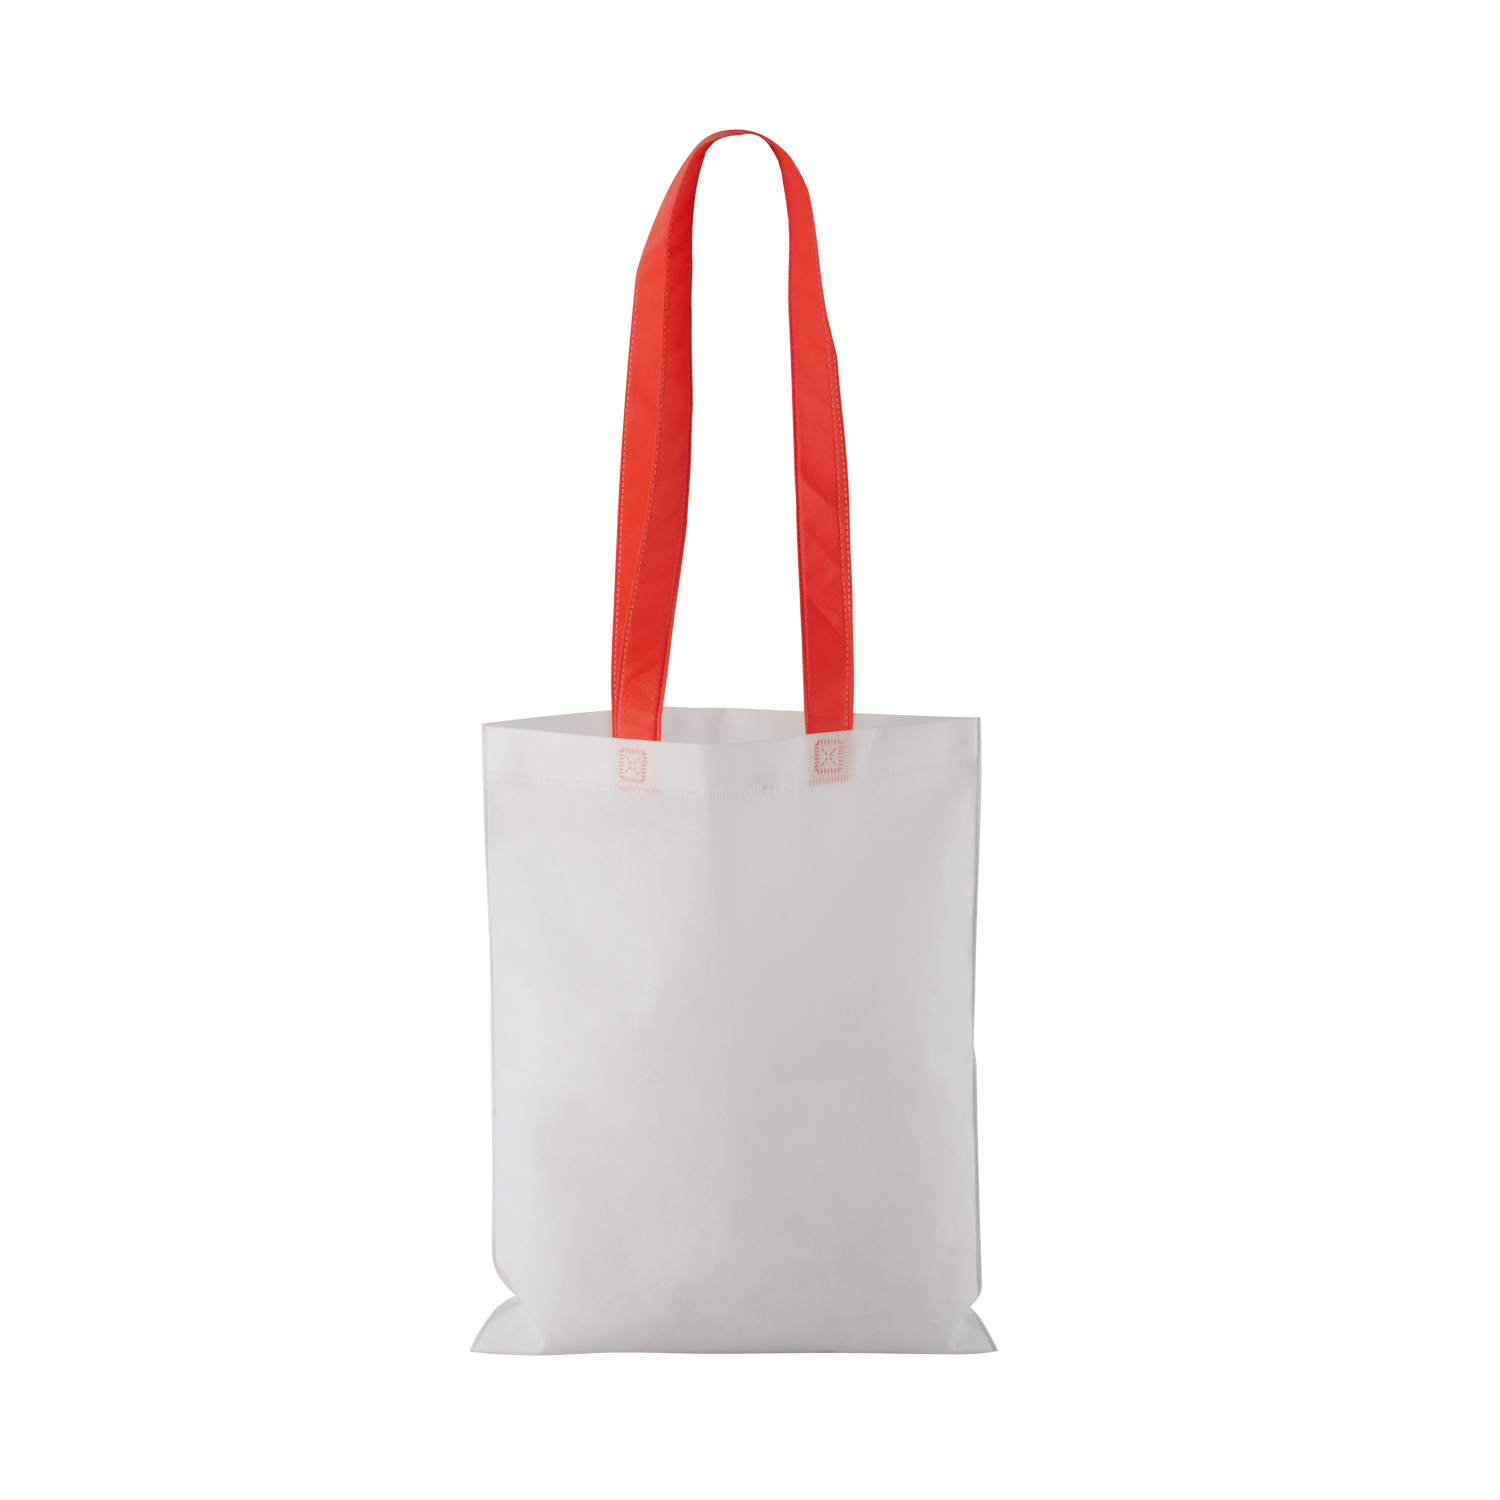 Non-woven Shopping bag with long handle (33 x 41,5 cm) - hmi17098-04 (Red)